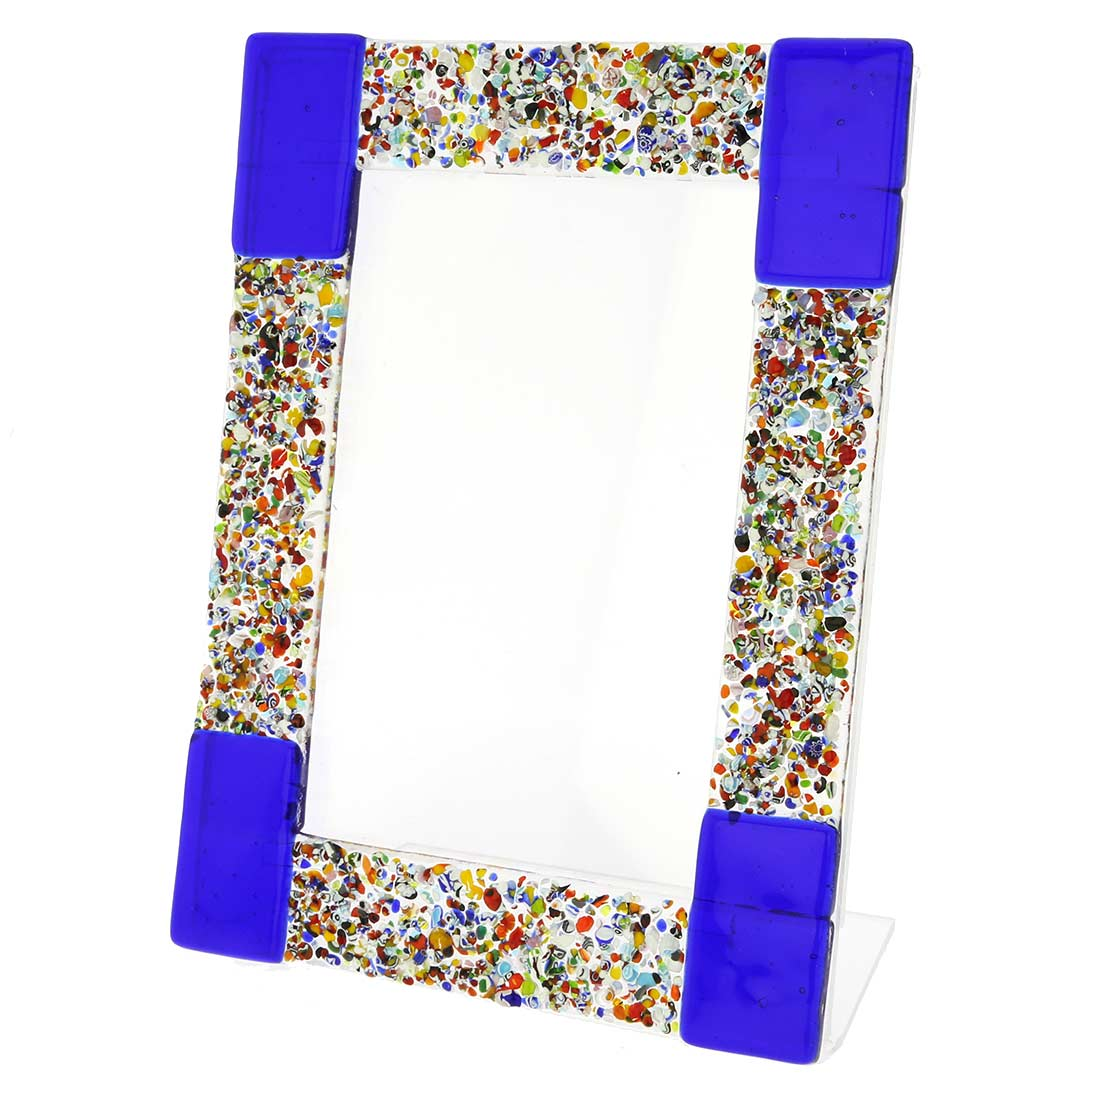 Murano Klimt Photo Frame - Blue 4x6 inch